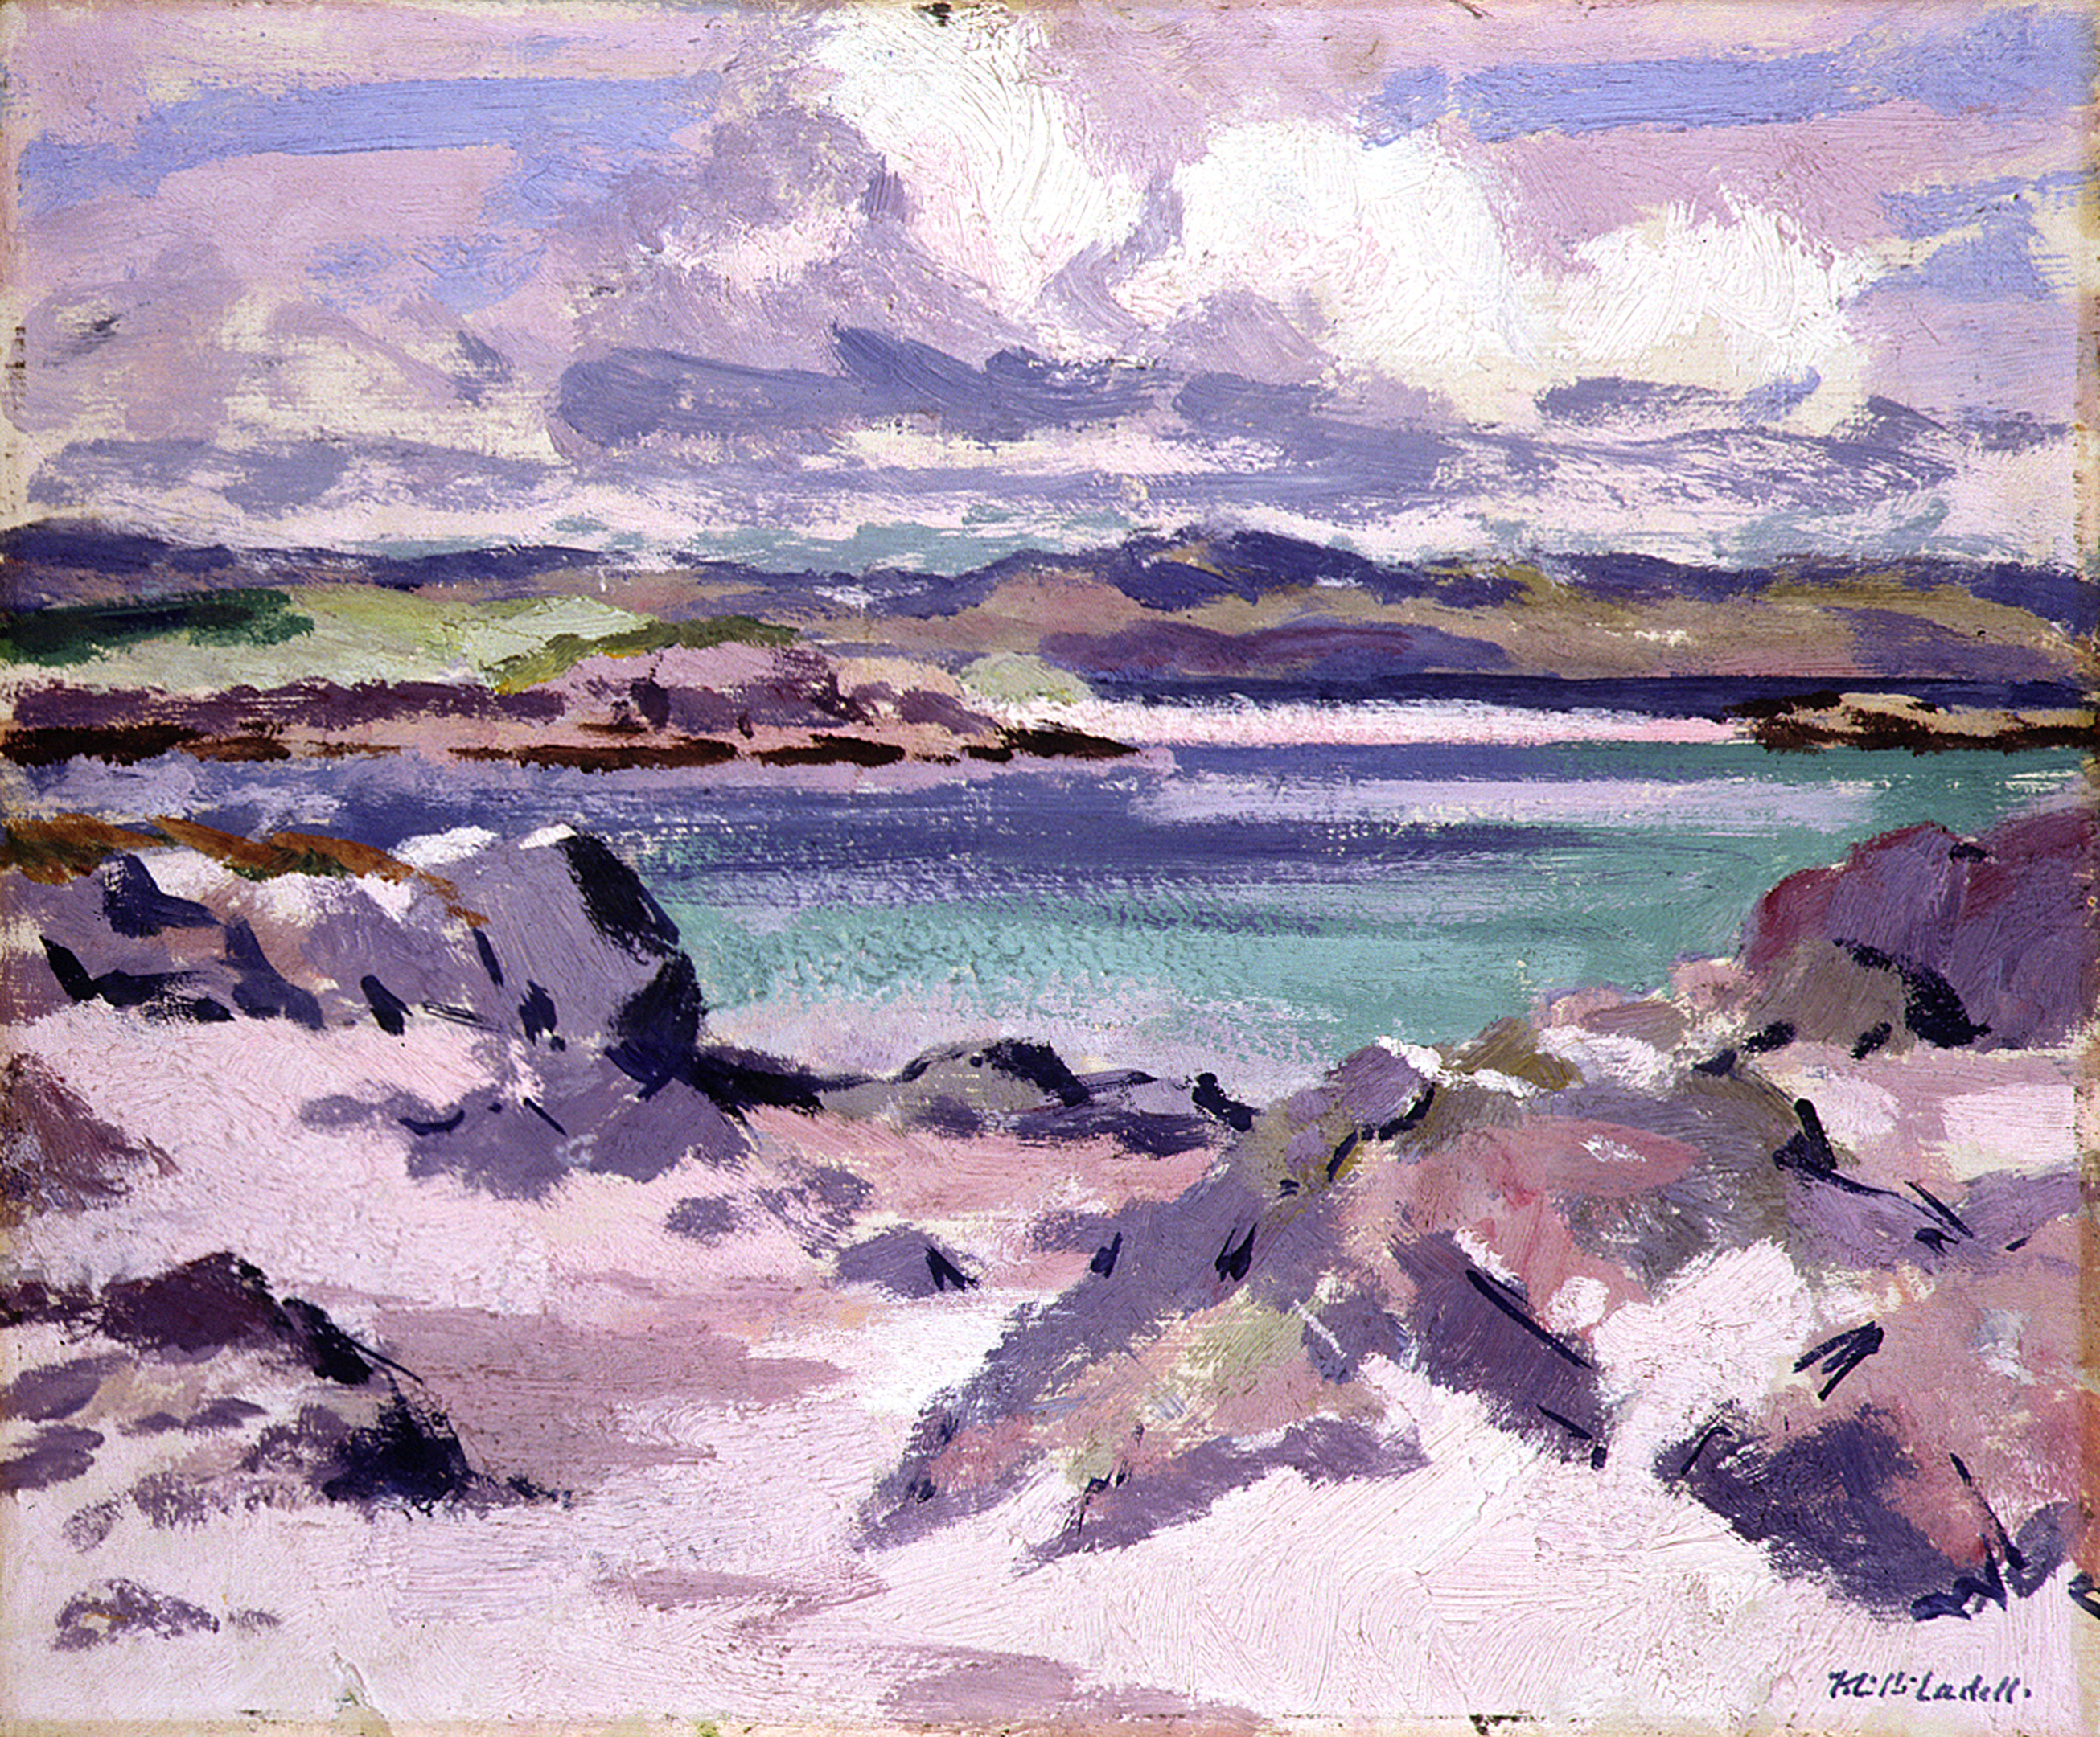 Iona by Cadell.